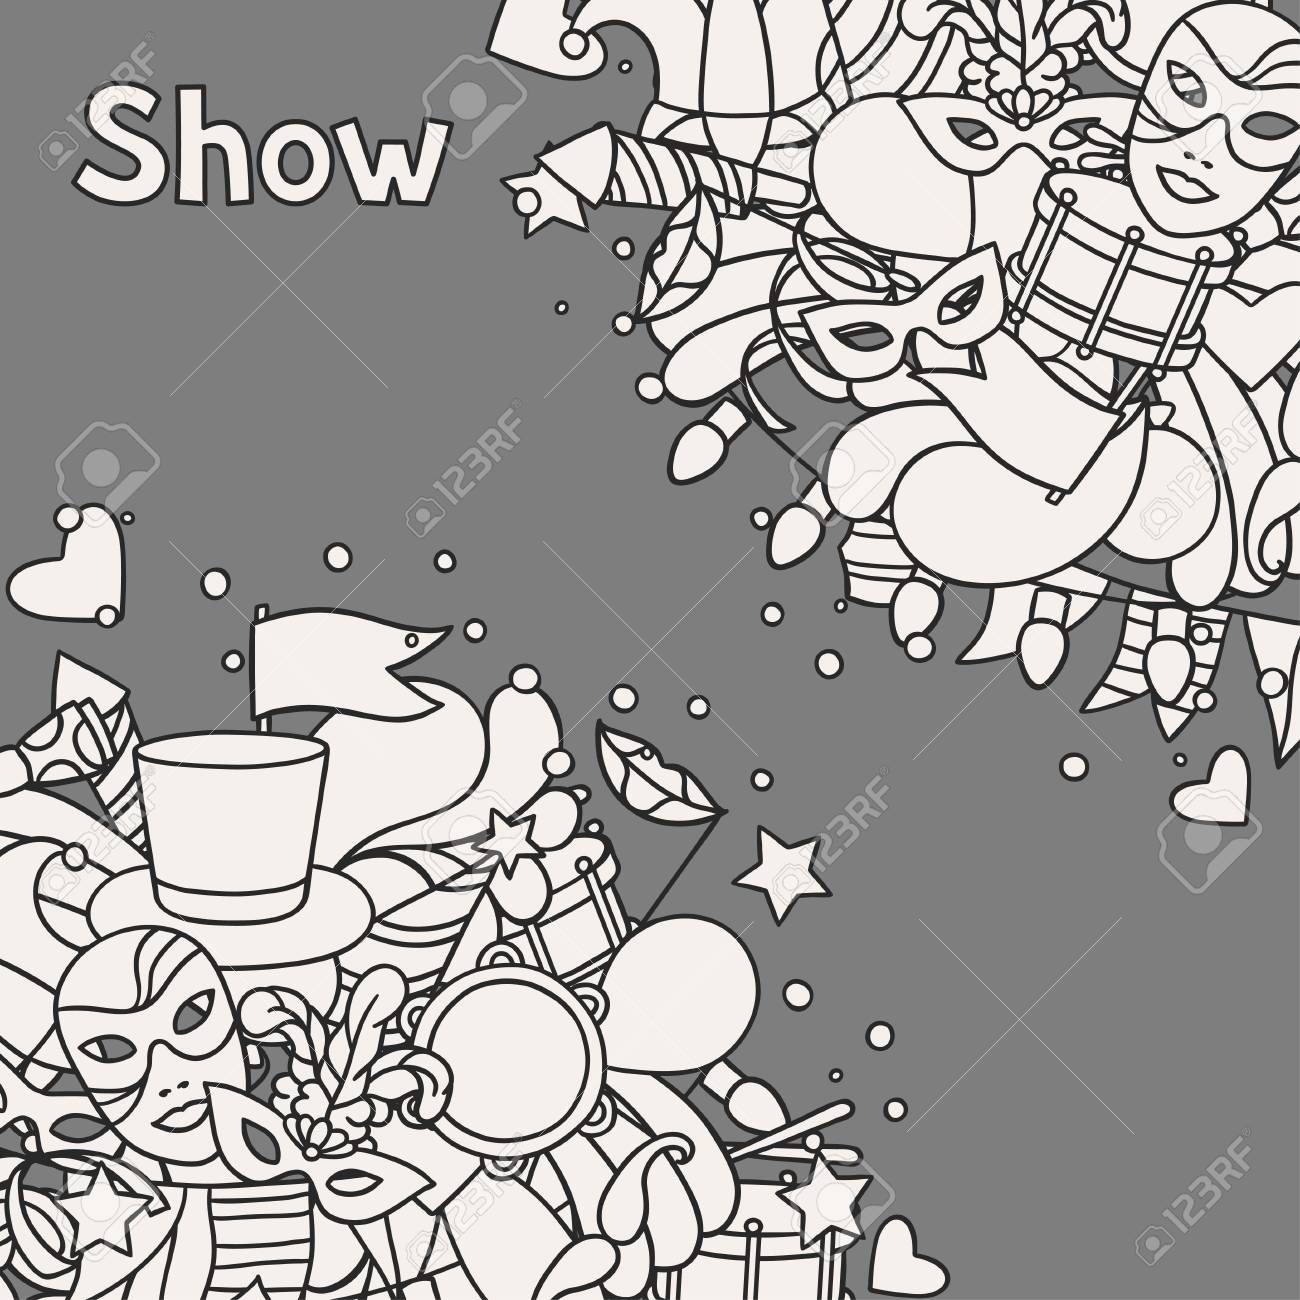 Carnival Show Background With Doodle Icons And Objects  Royalty Free